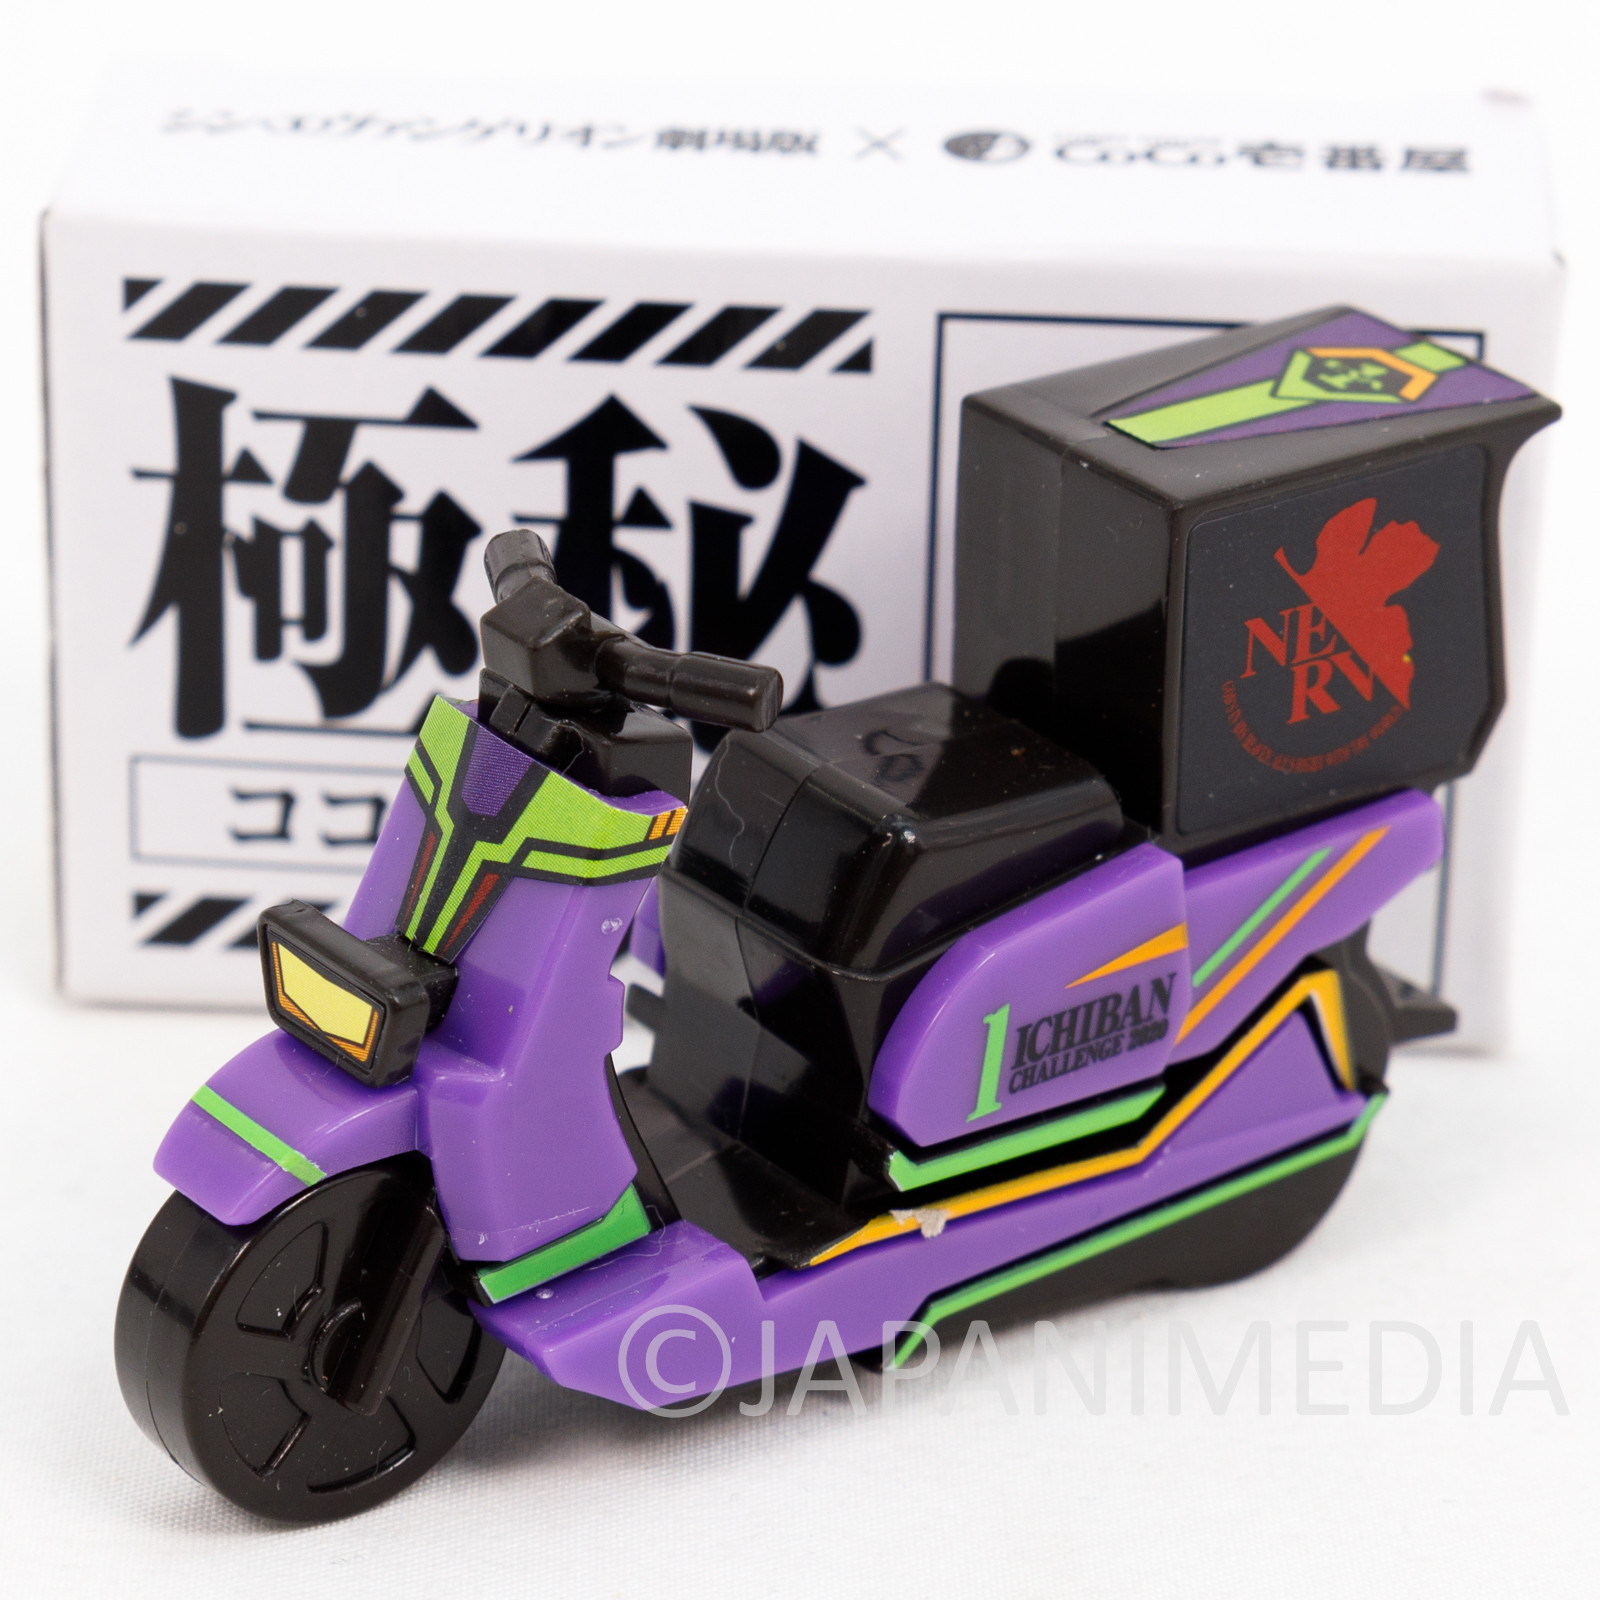 Evangelion x Kokoichi Delivery Bike Figure EVA-01 JAPAN ANIME